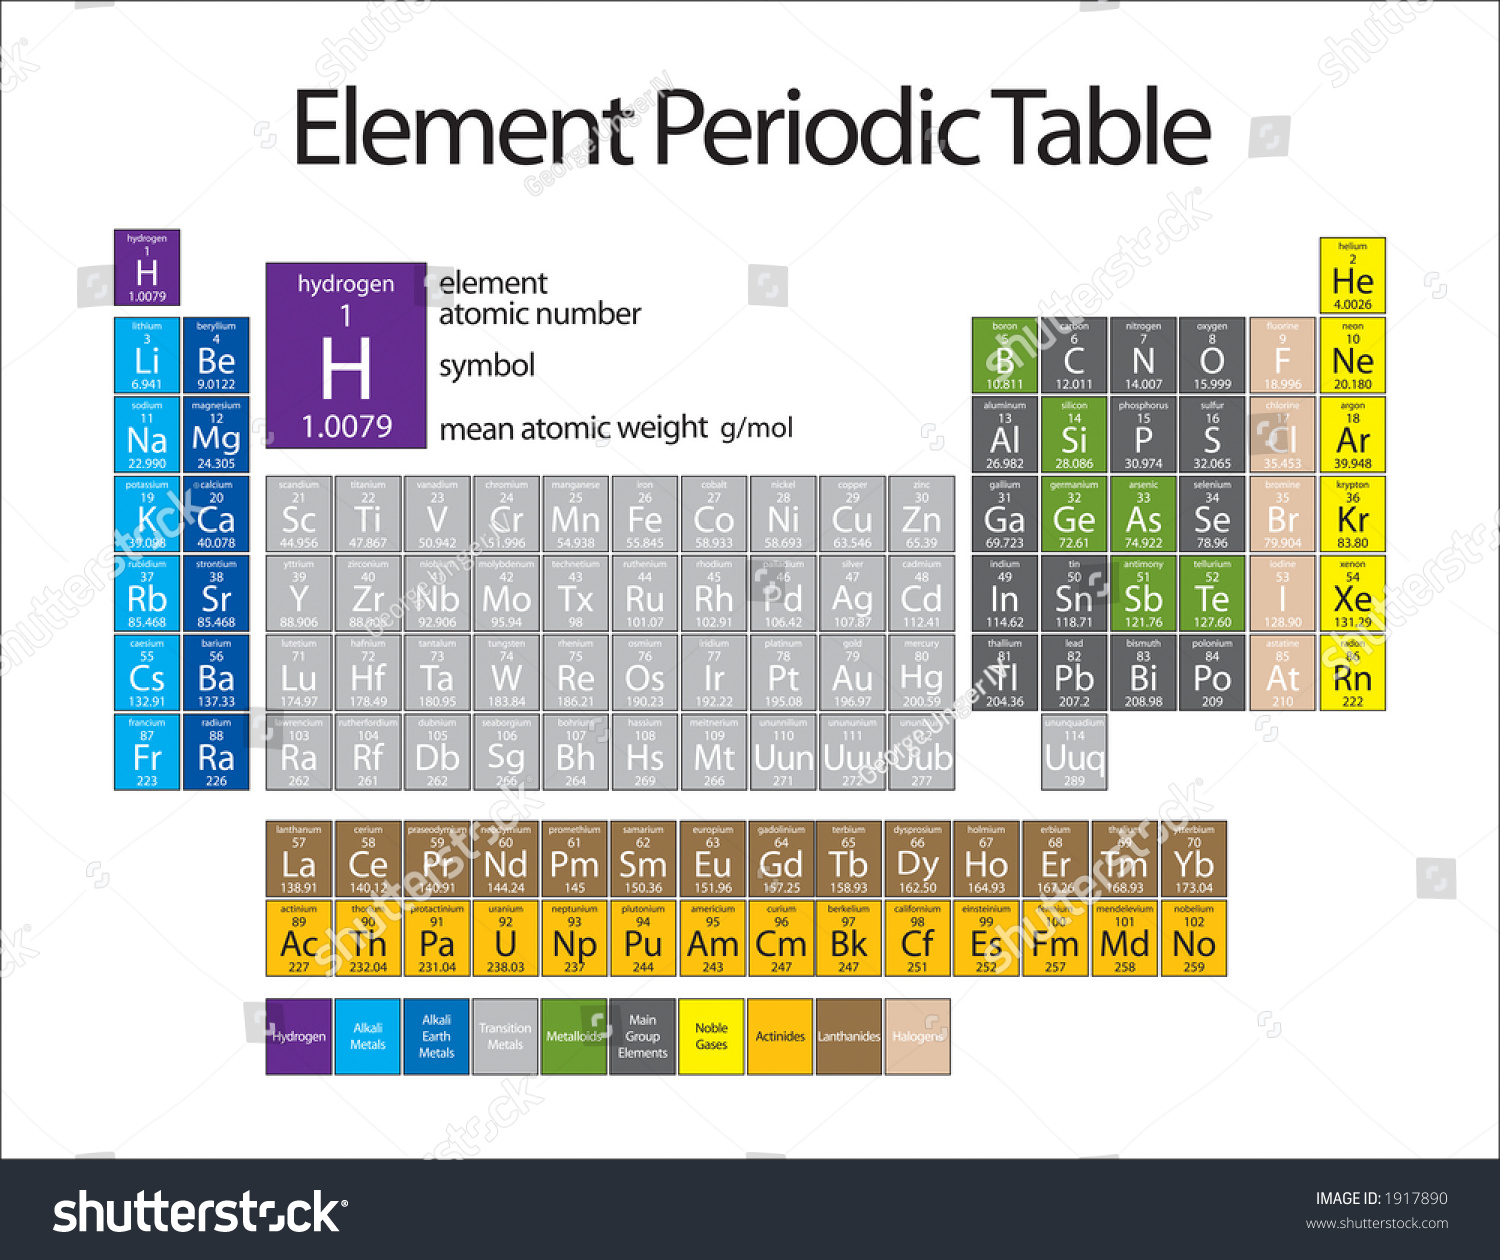 Chemistry 101 elemental periodic table their stock vector 1917890 chemistry 101 elemental periodic table with their families color coordinated includes atomic mass gamestrikefo Images